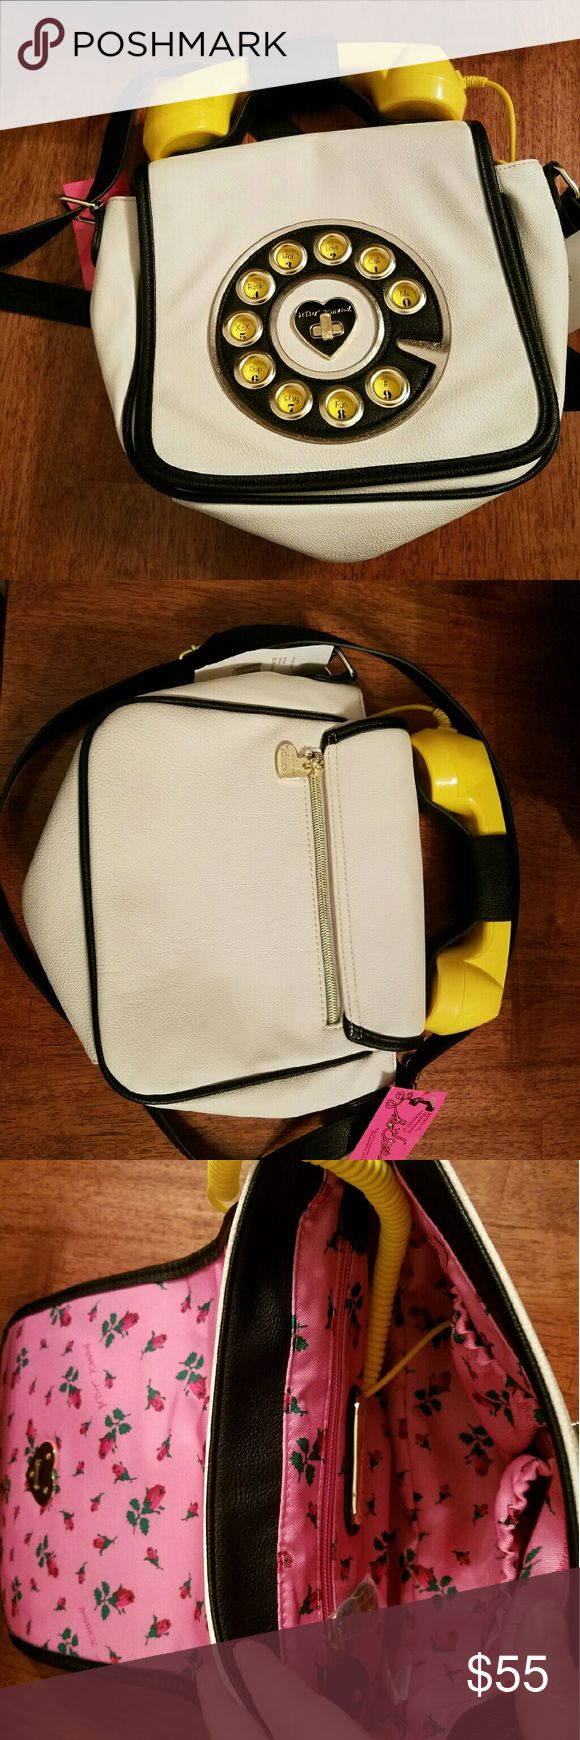 Betsey Johnson Phone Crossbody NWT Betsey Johnson Phone Crossbody NWT  Phone really works. Plugs in to ear bud jack on cellphone, answer and end calls on handset. Would be a great Christmas gift for teens.  Orig  $98 asking  $55 LAST ONE IN STOCK Betsey Johnson Bags Crossbody Bags